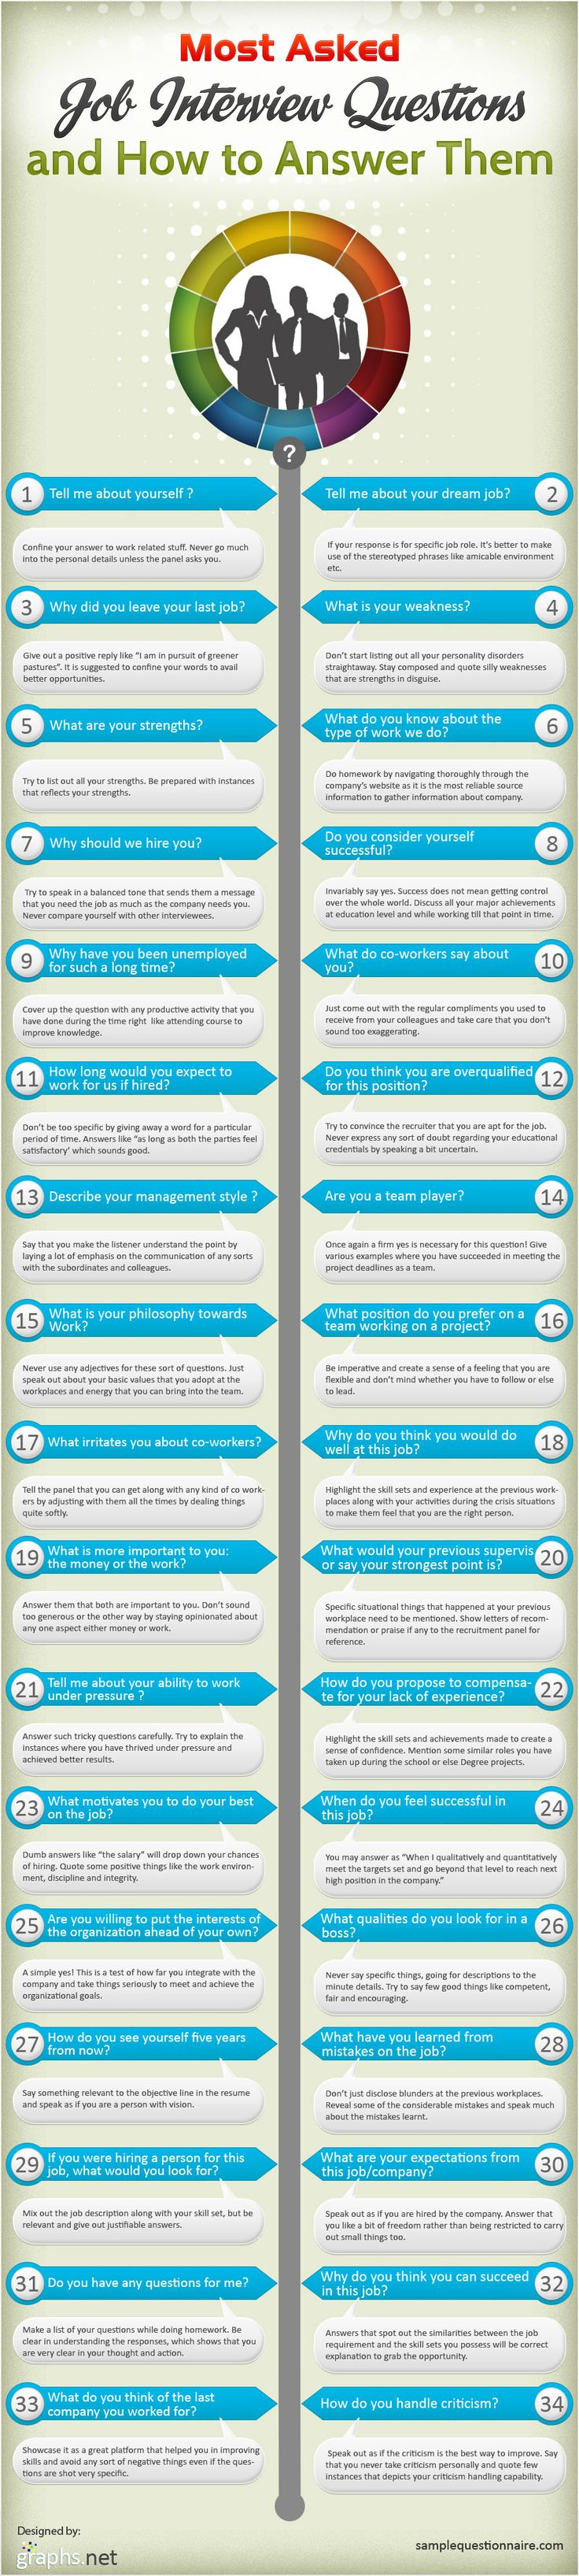 ideas about supervisor interview questions 34 most asked job interview questions how to answer them